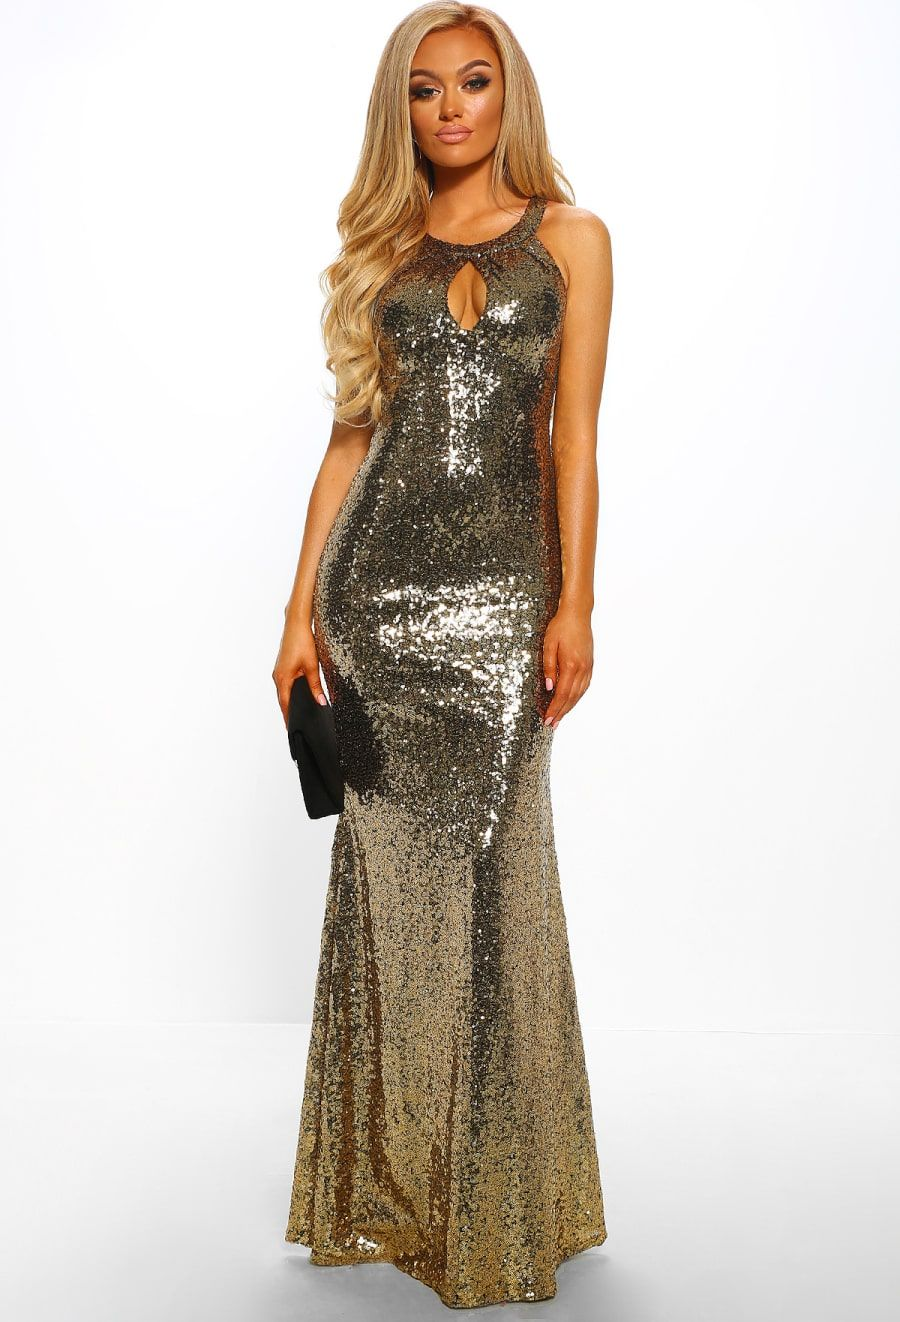 5e04d0df Born A Star Gold Sequin Frill Back Fishtail Maxi Dress - 8 | Outfits ...